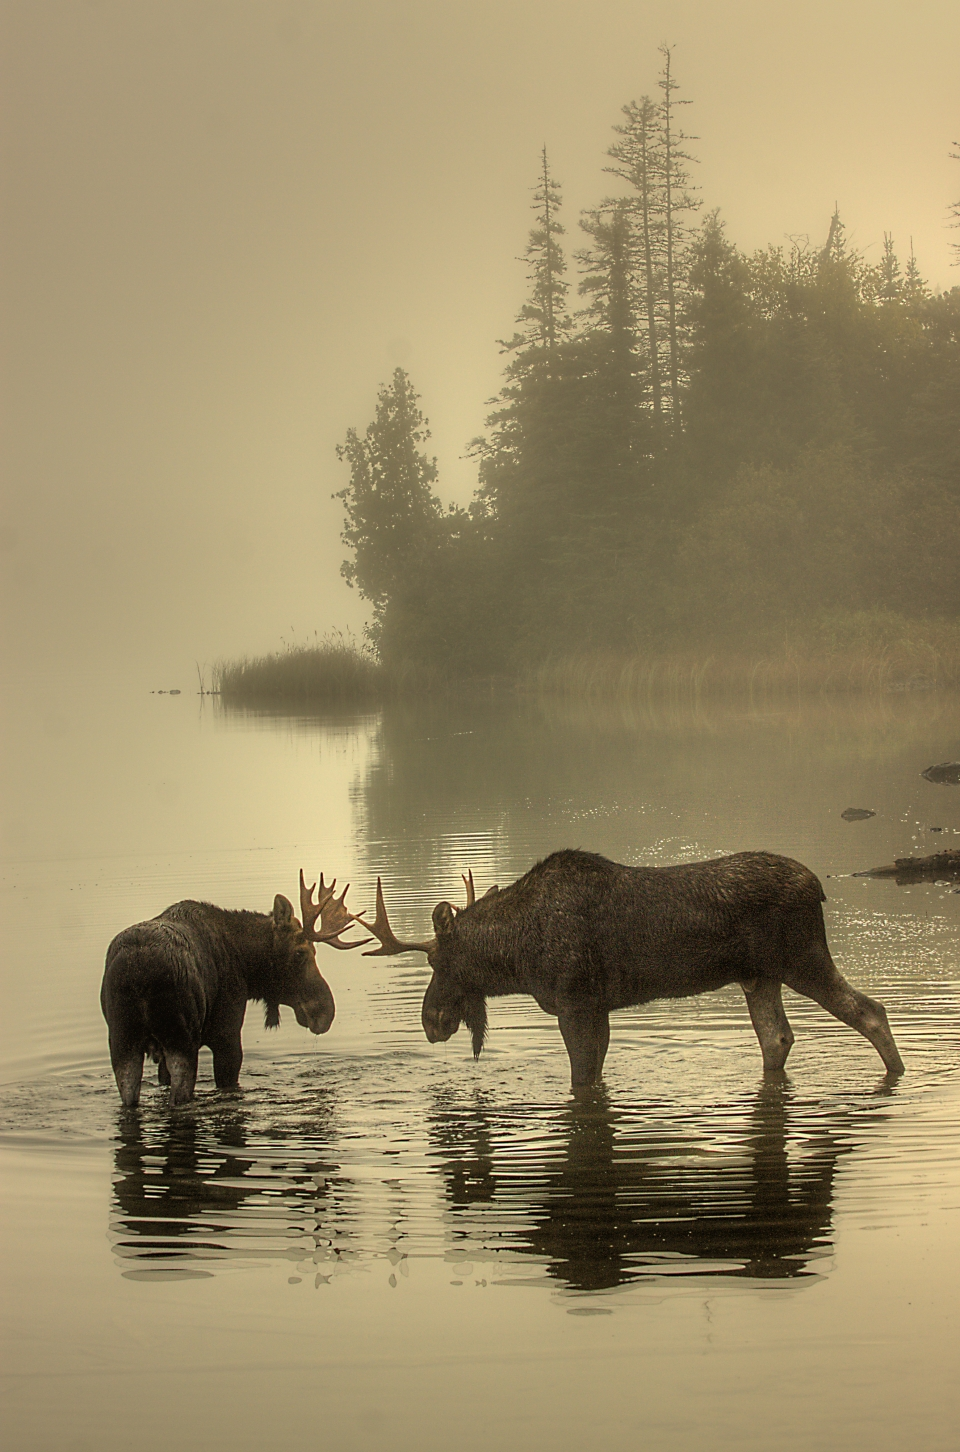 Two moose play in tranquil water